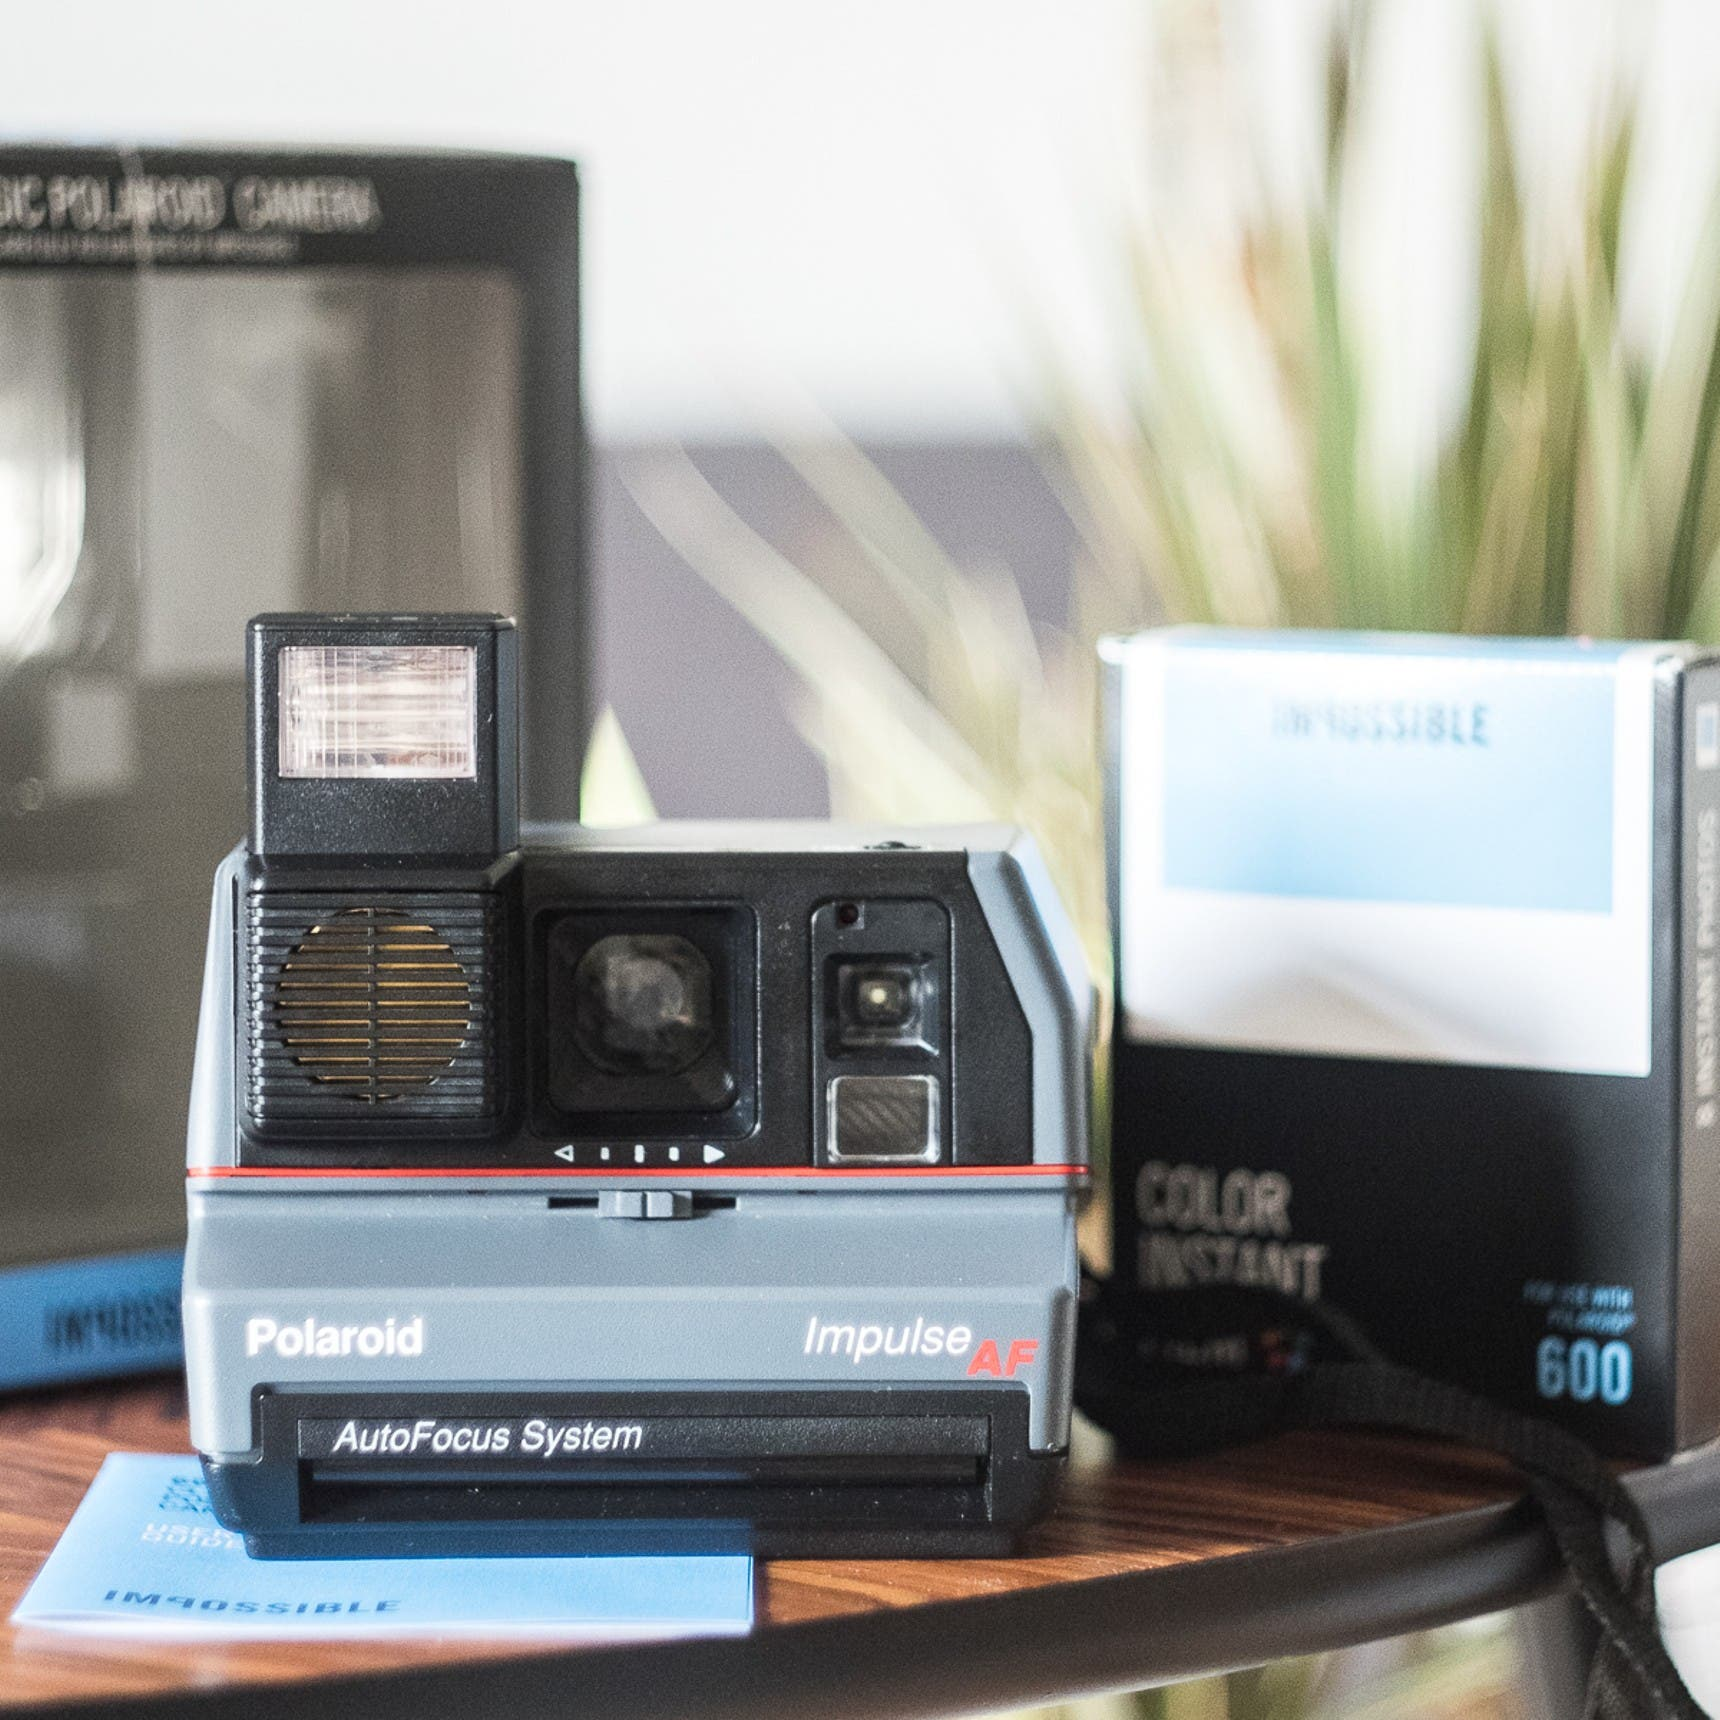 Impossible Project Polaroid 600 Review and Test